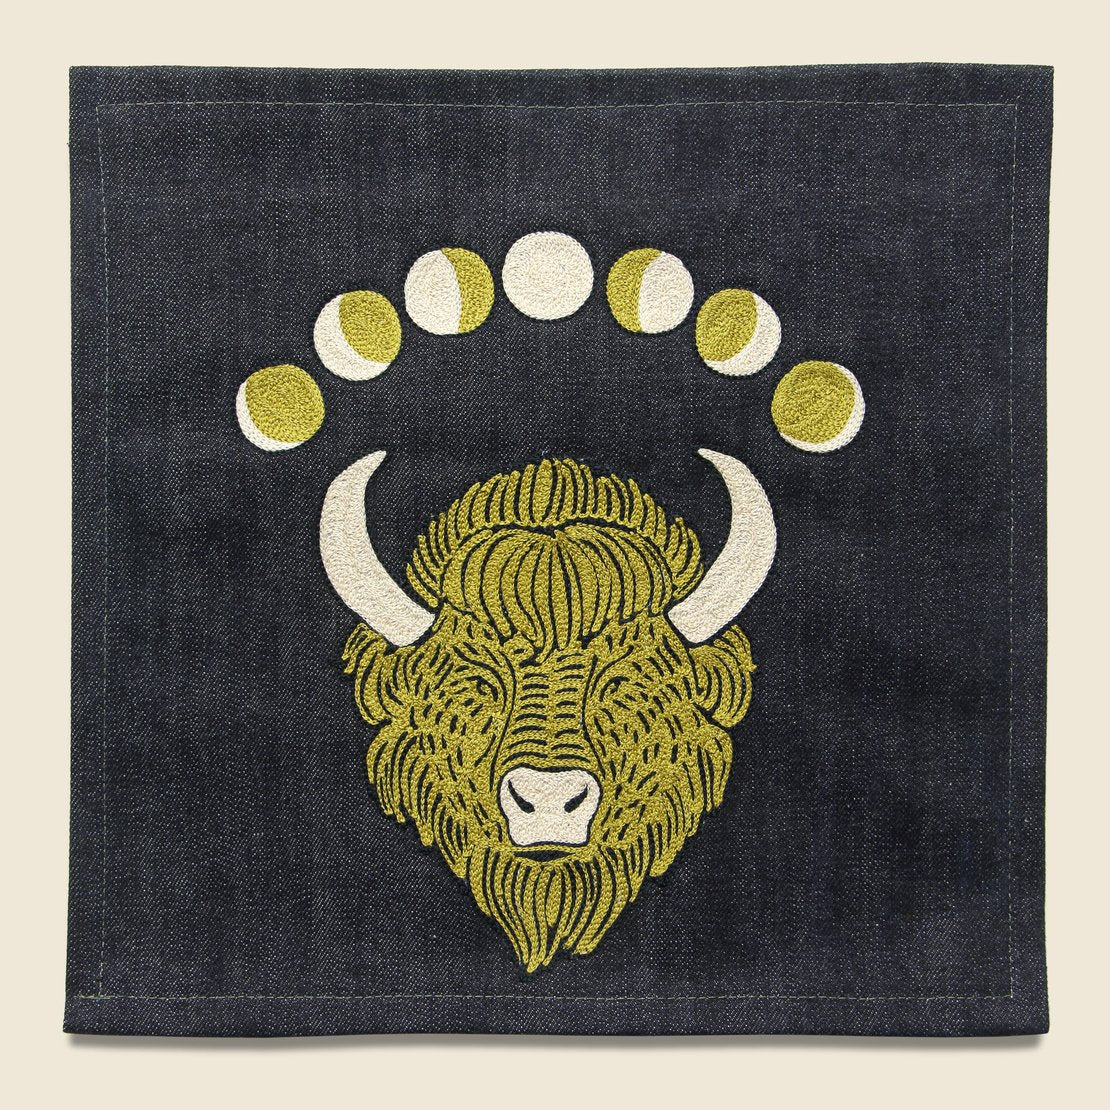 Fort Lonesome Large Direct Stitch Embroidery - Lunar Buffalo